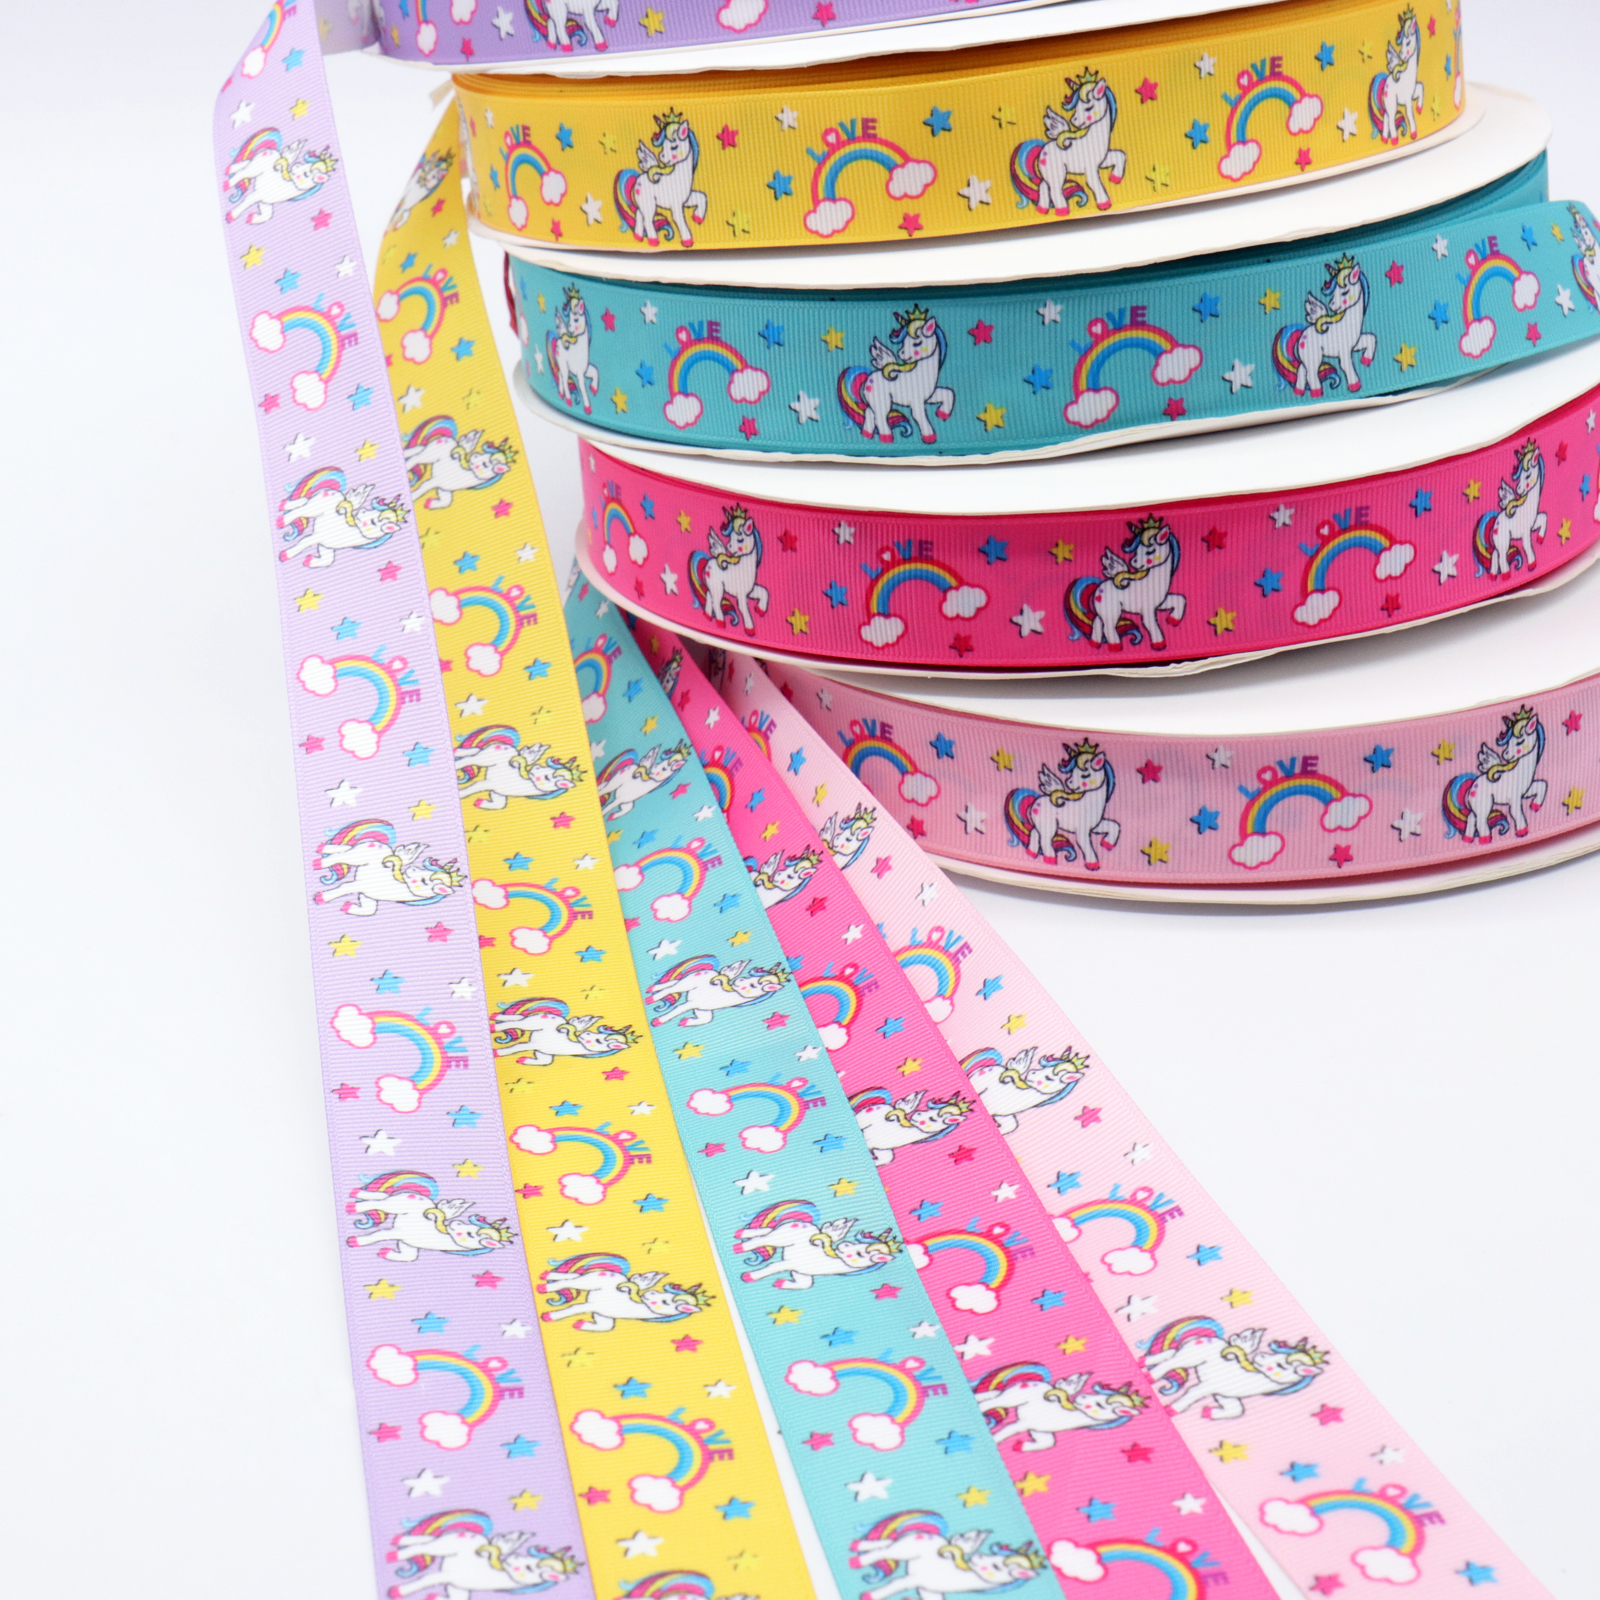 1Yard 25mm Unicorn Grosgrain Ribbon Rainbow Star Printed Ribbons For DIY Hair bows Accessory Gift Wrapping Wedding Party Decor